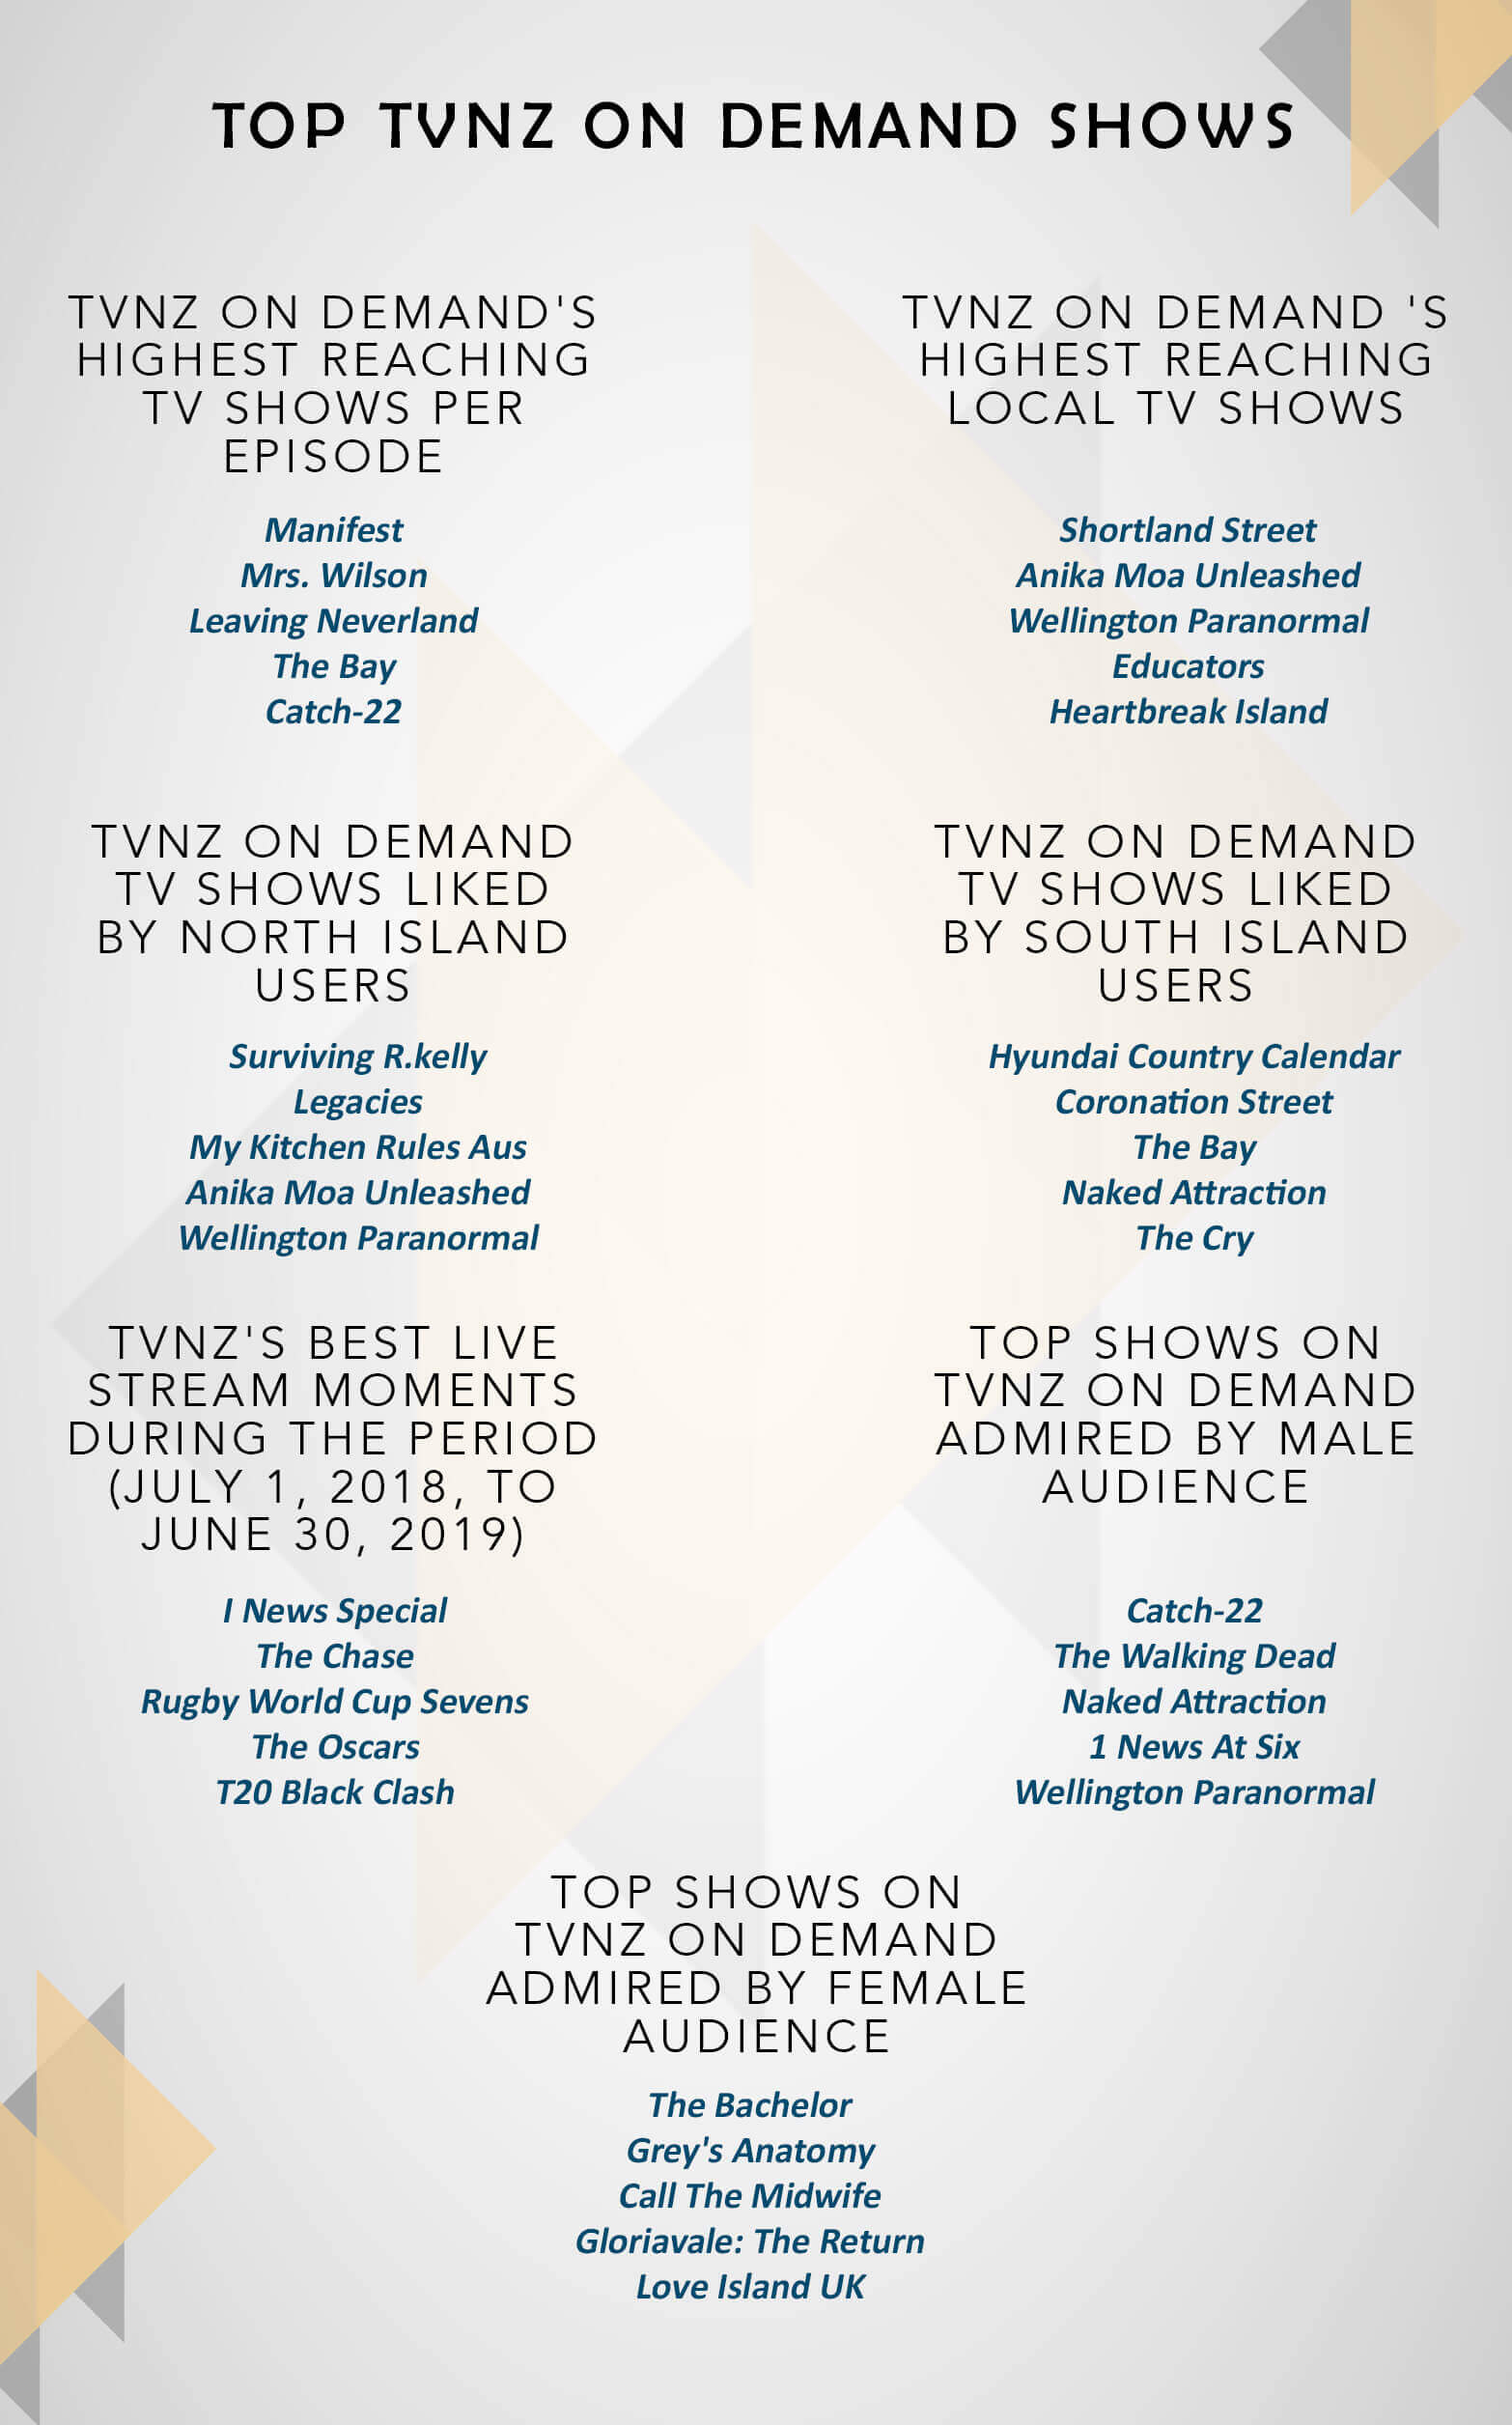 top-tvnz-on-demand-shows-2